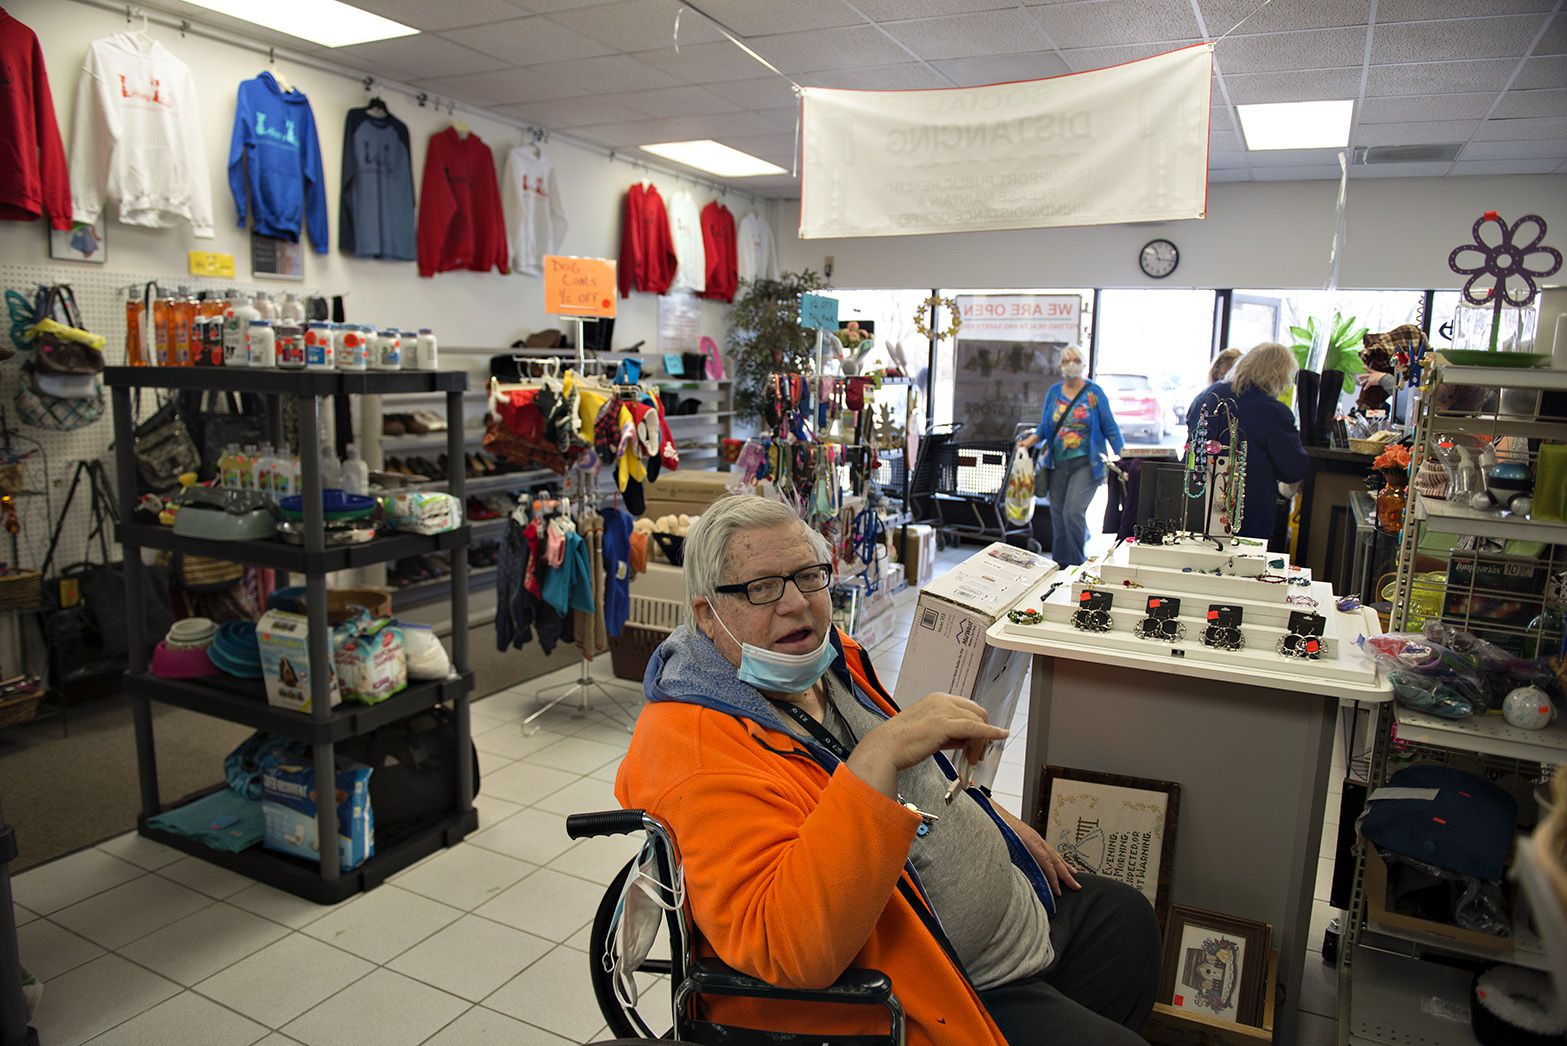 """""""[The Whiteside County Housing Authority] has done a real good job taking care of us,' said Craig Howard, as he shopped for a computer cord at Happy Tails thrift shop. Howard has been a resident of the high rise since 2002."""